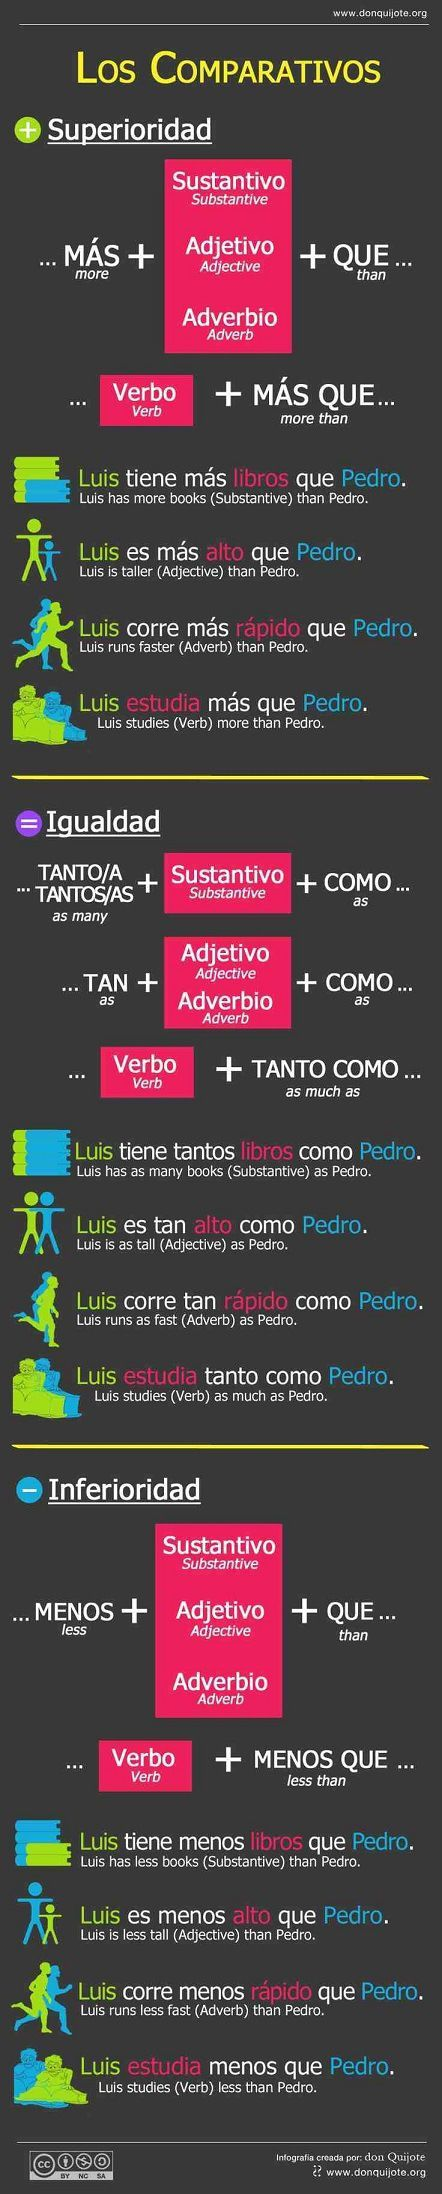 36 best Learn to Speak Spanish images on Pinterest | Autism ...